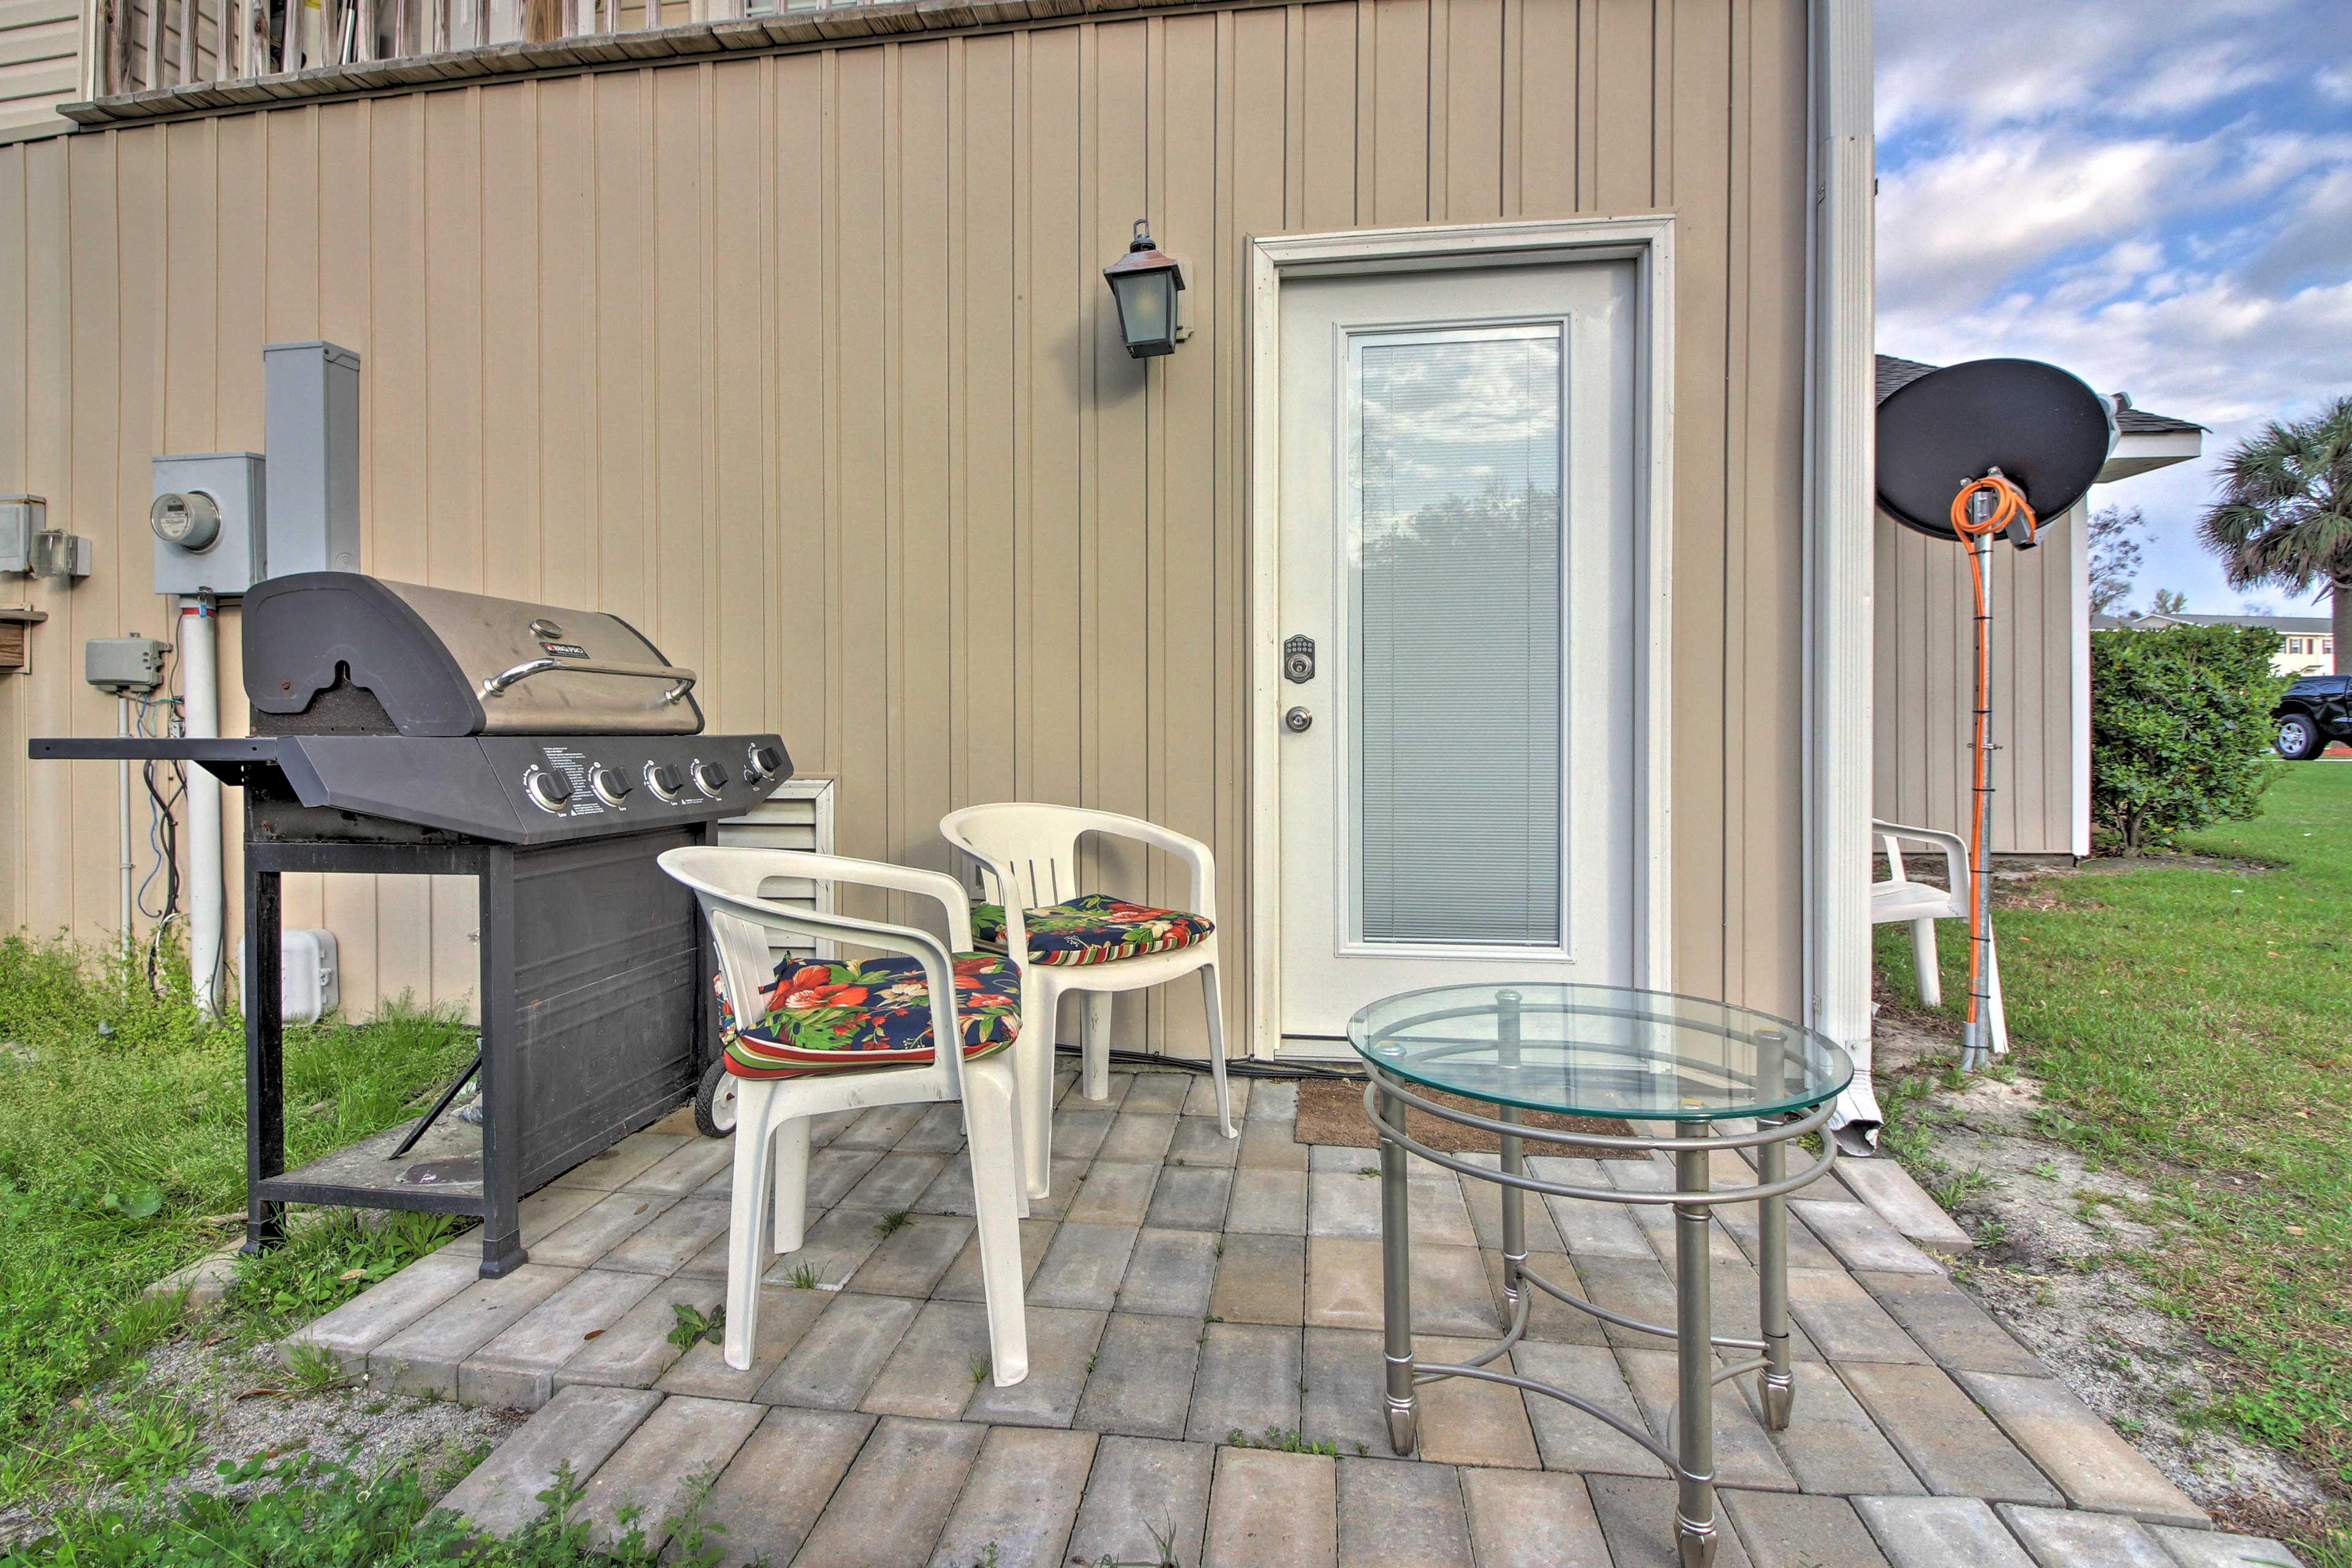 Enjoy leisurely afternoons on your private patio featuring a gas grill.